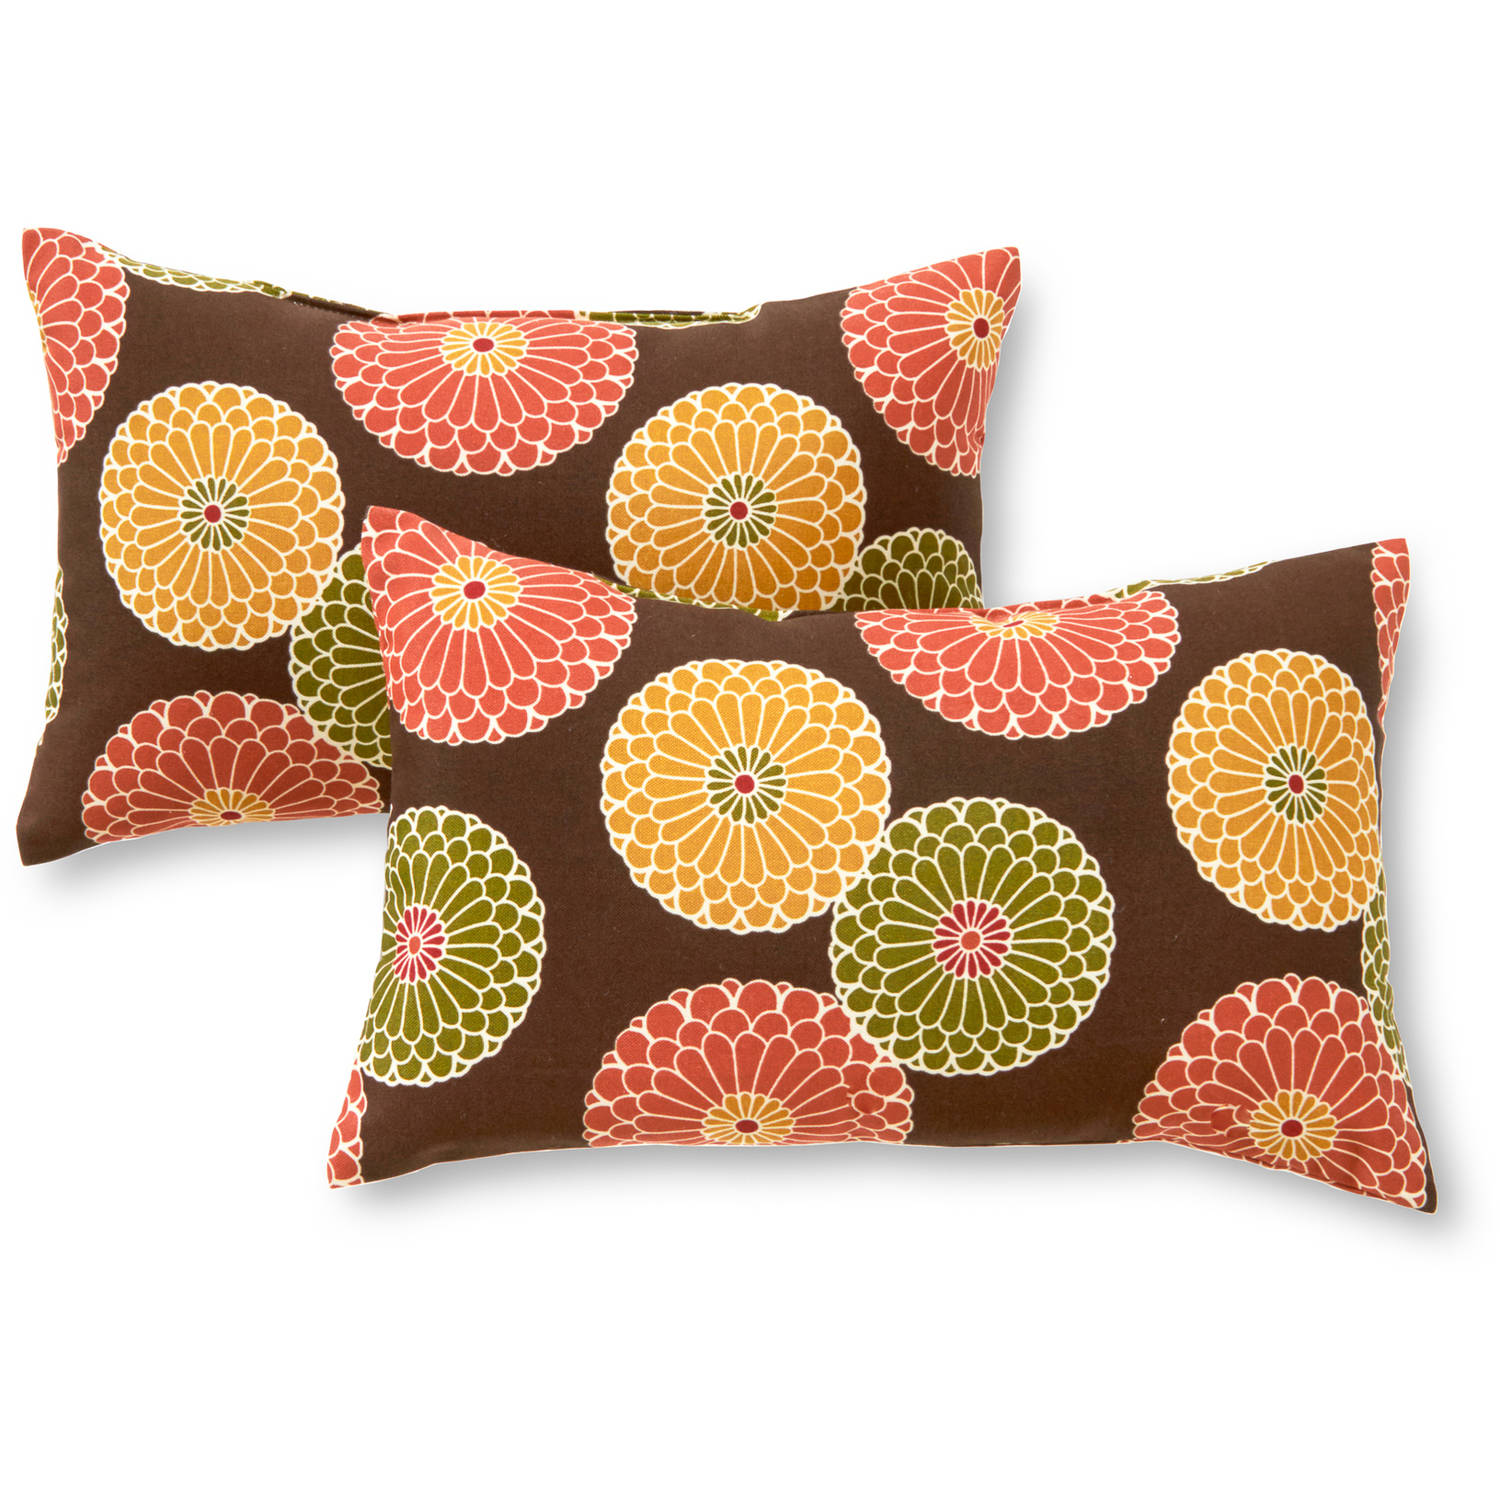 Greendale Home Fashions Rectangle Outdoor Accent Pillows, Set of 2, Flowers on Chocolate